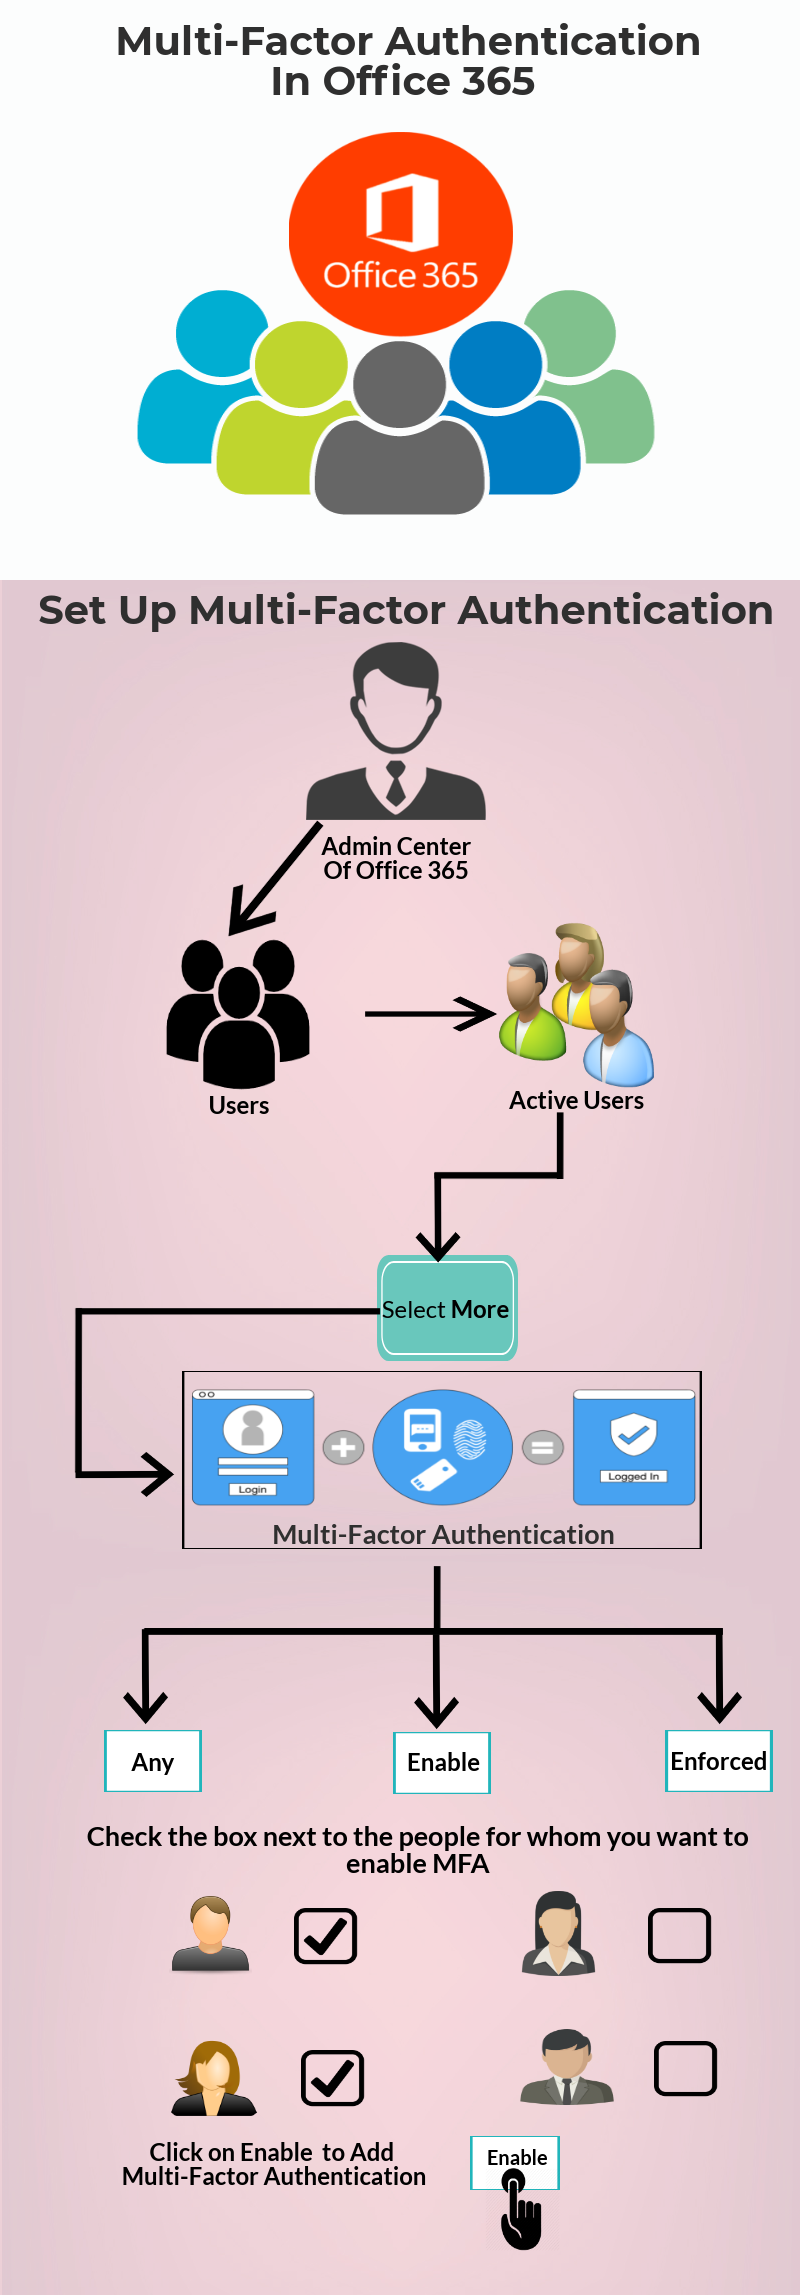 Setup Multi Factor Authentication In Office 365